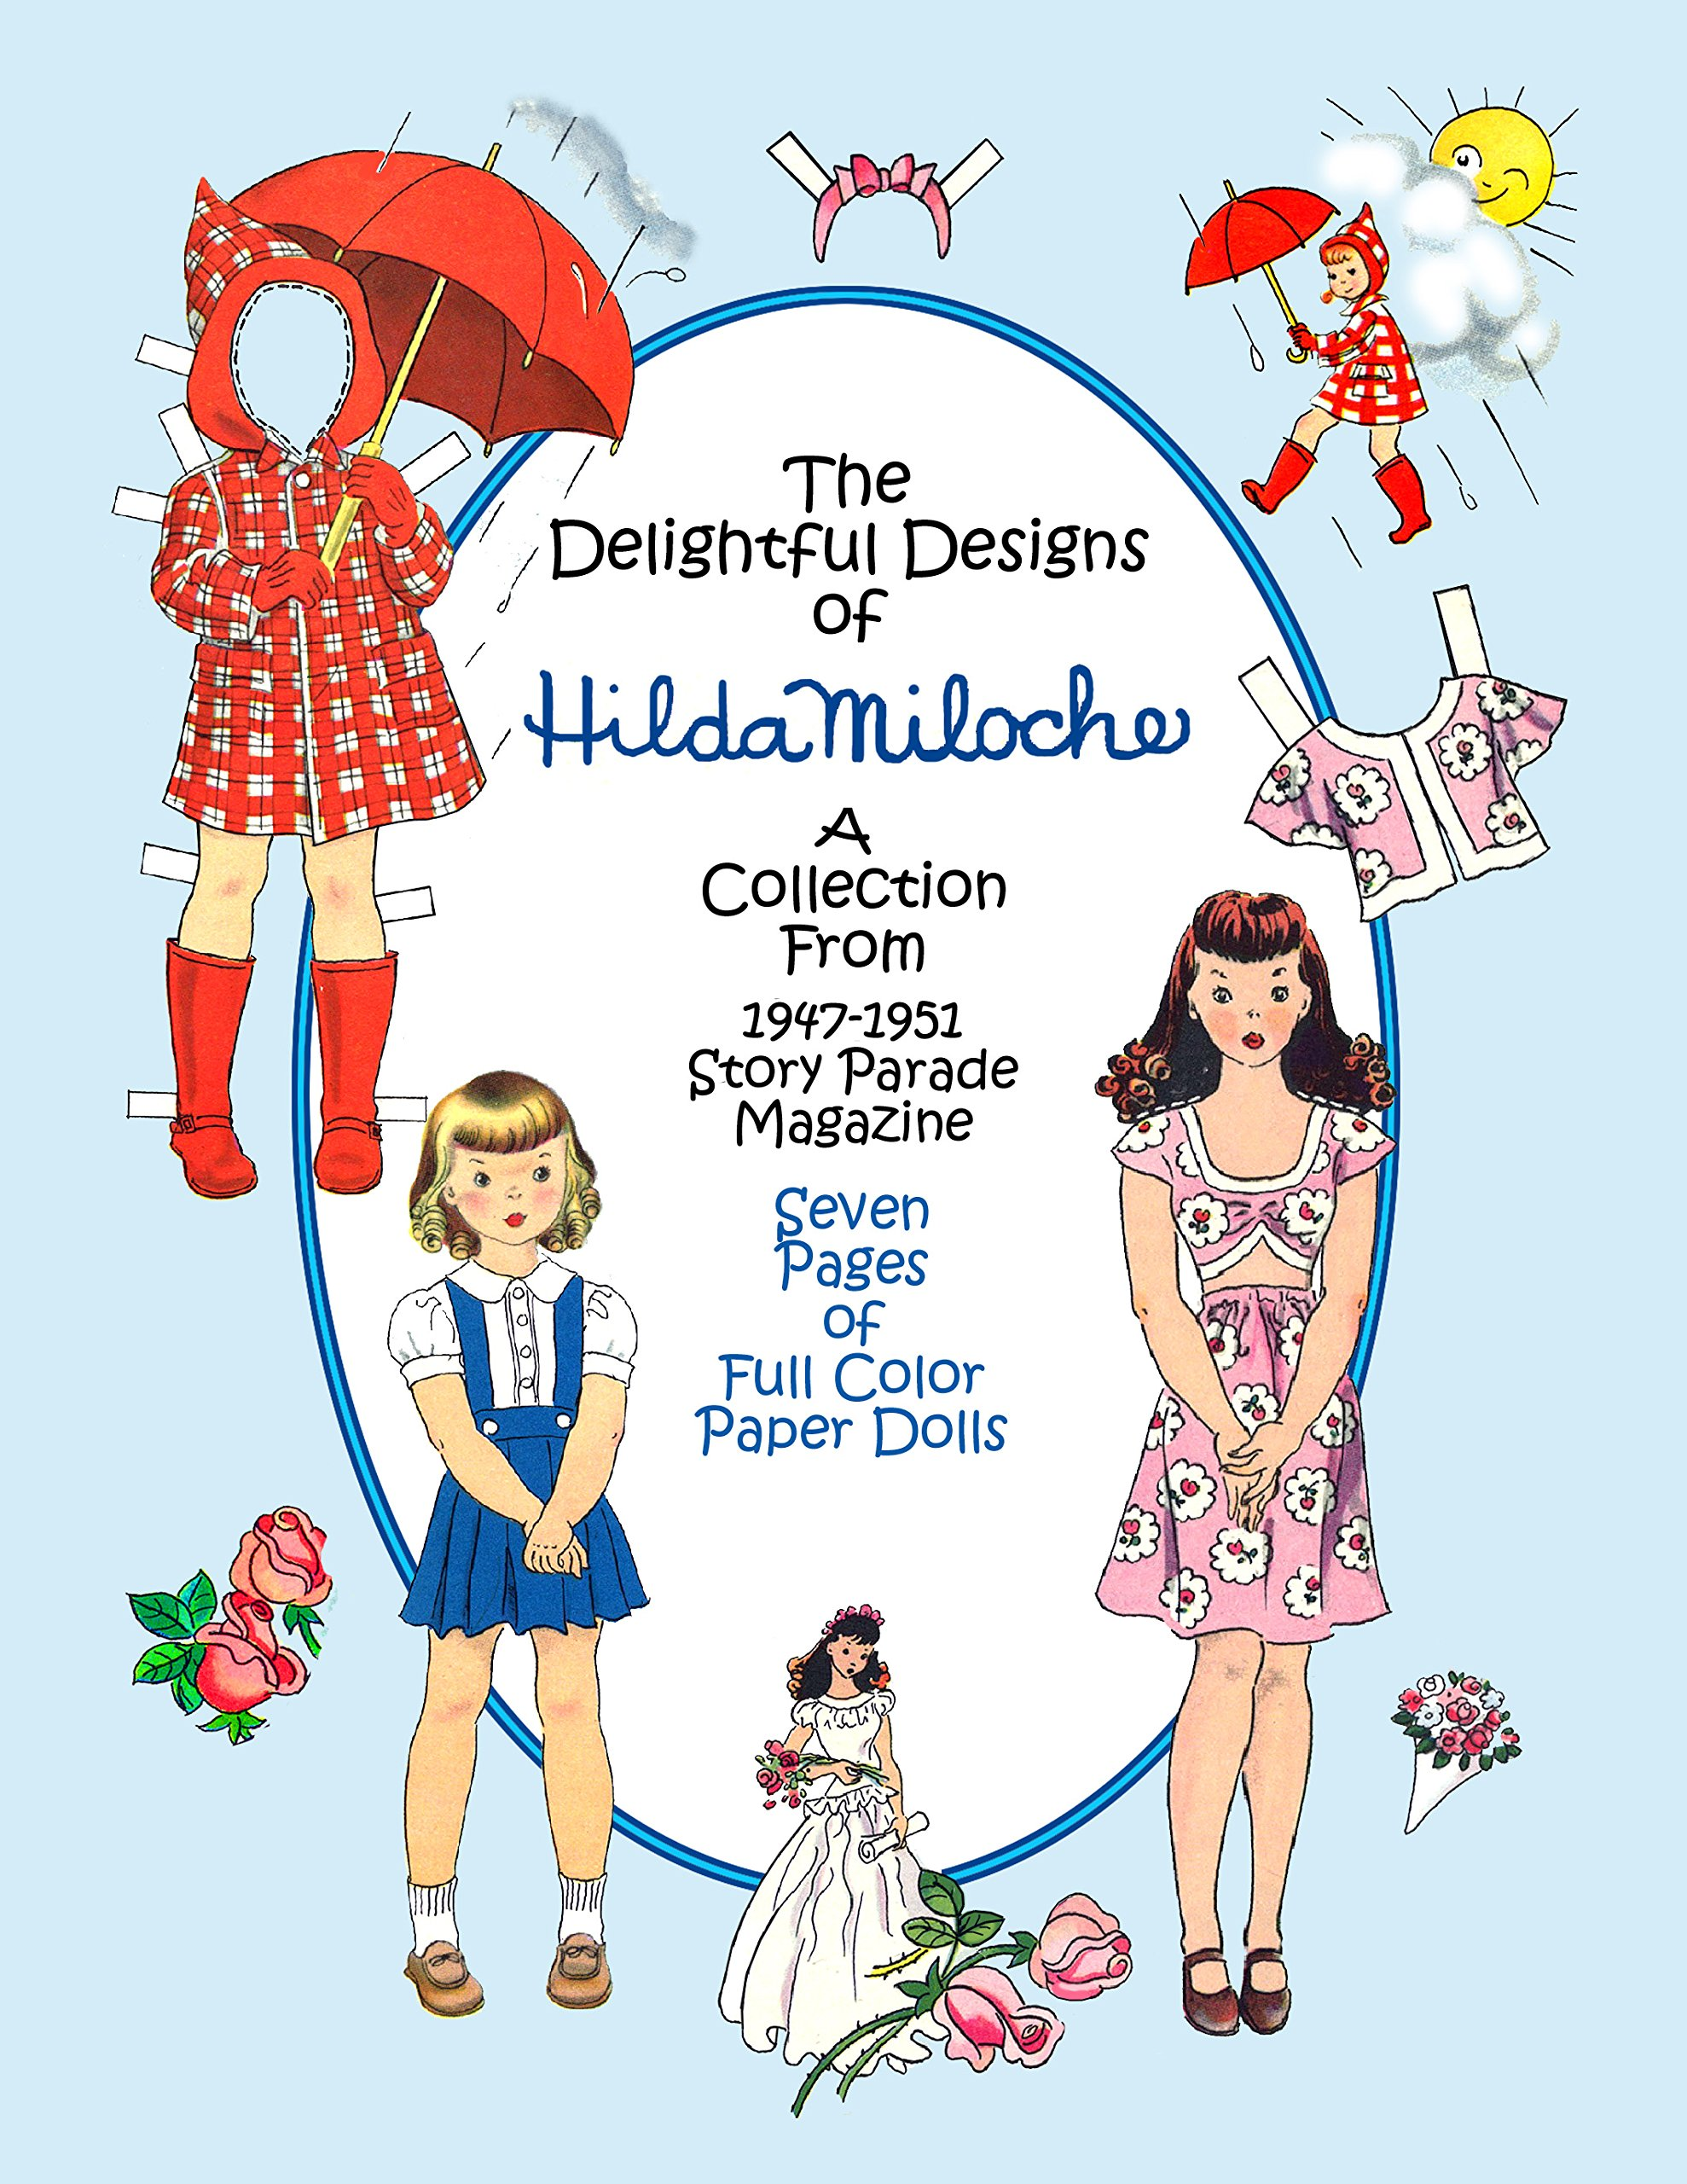 Download Hilda Miloche Paper Doll Collection I, #0554 pdf